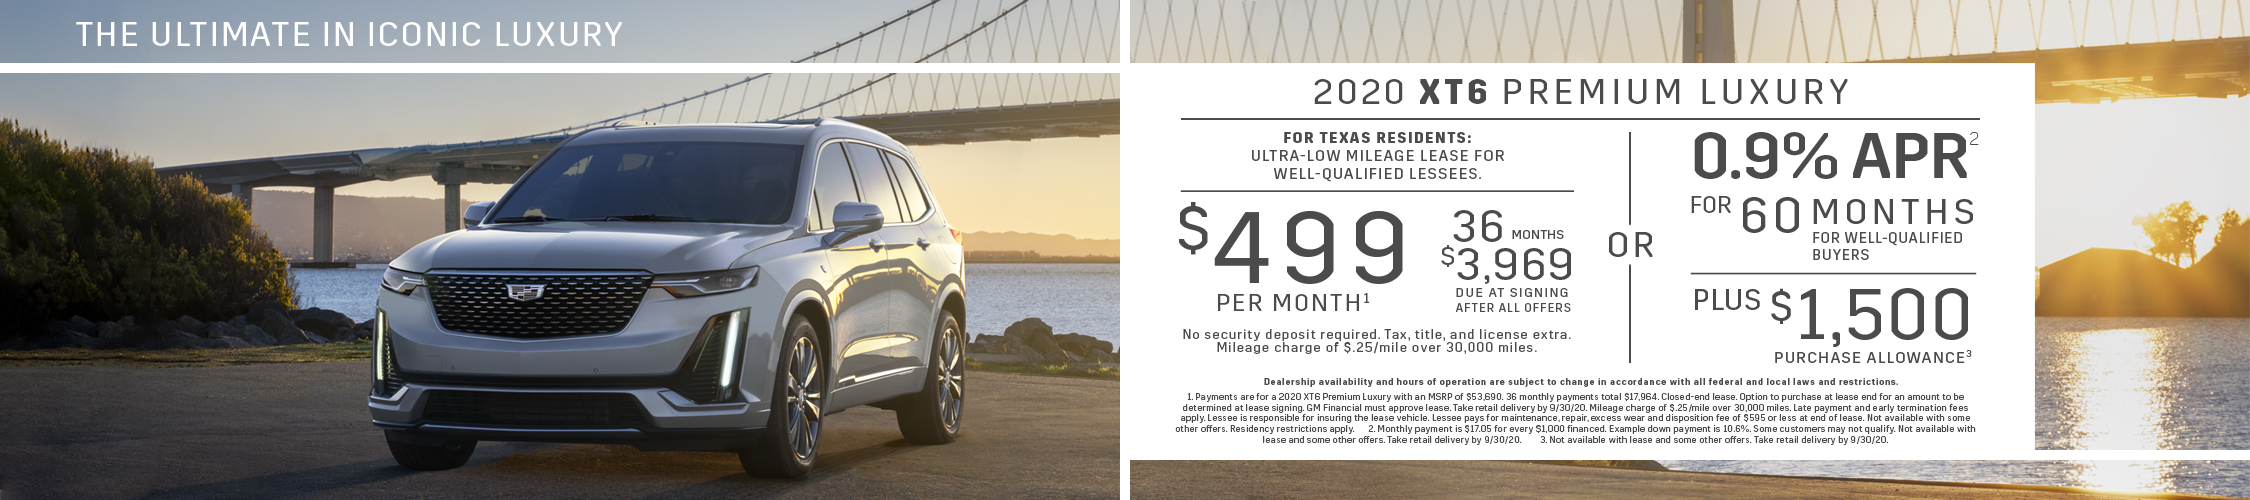 2020 XT6 Premium Luxury: Lease Offer (Image) - 0f528d